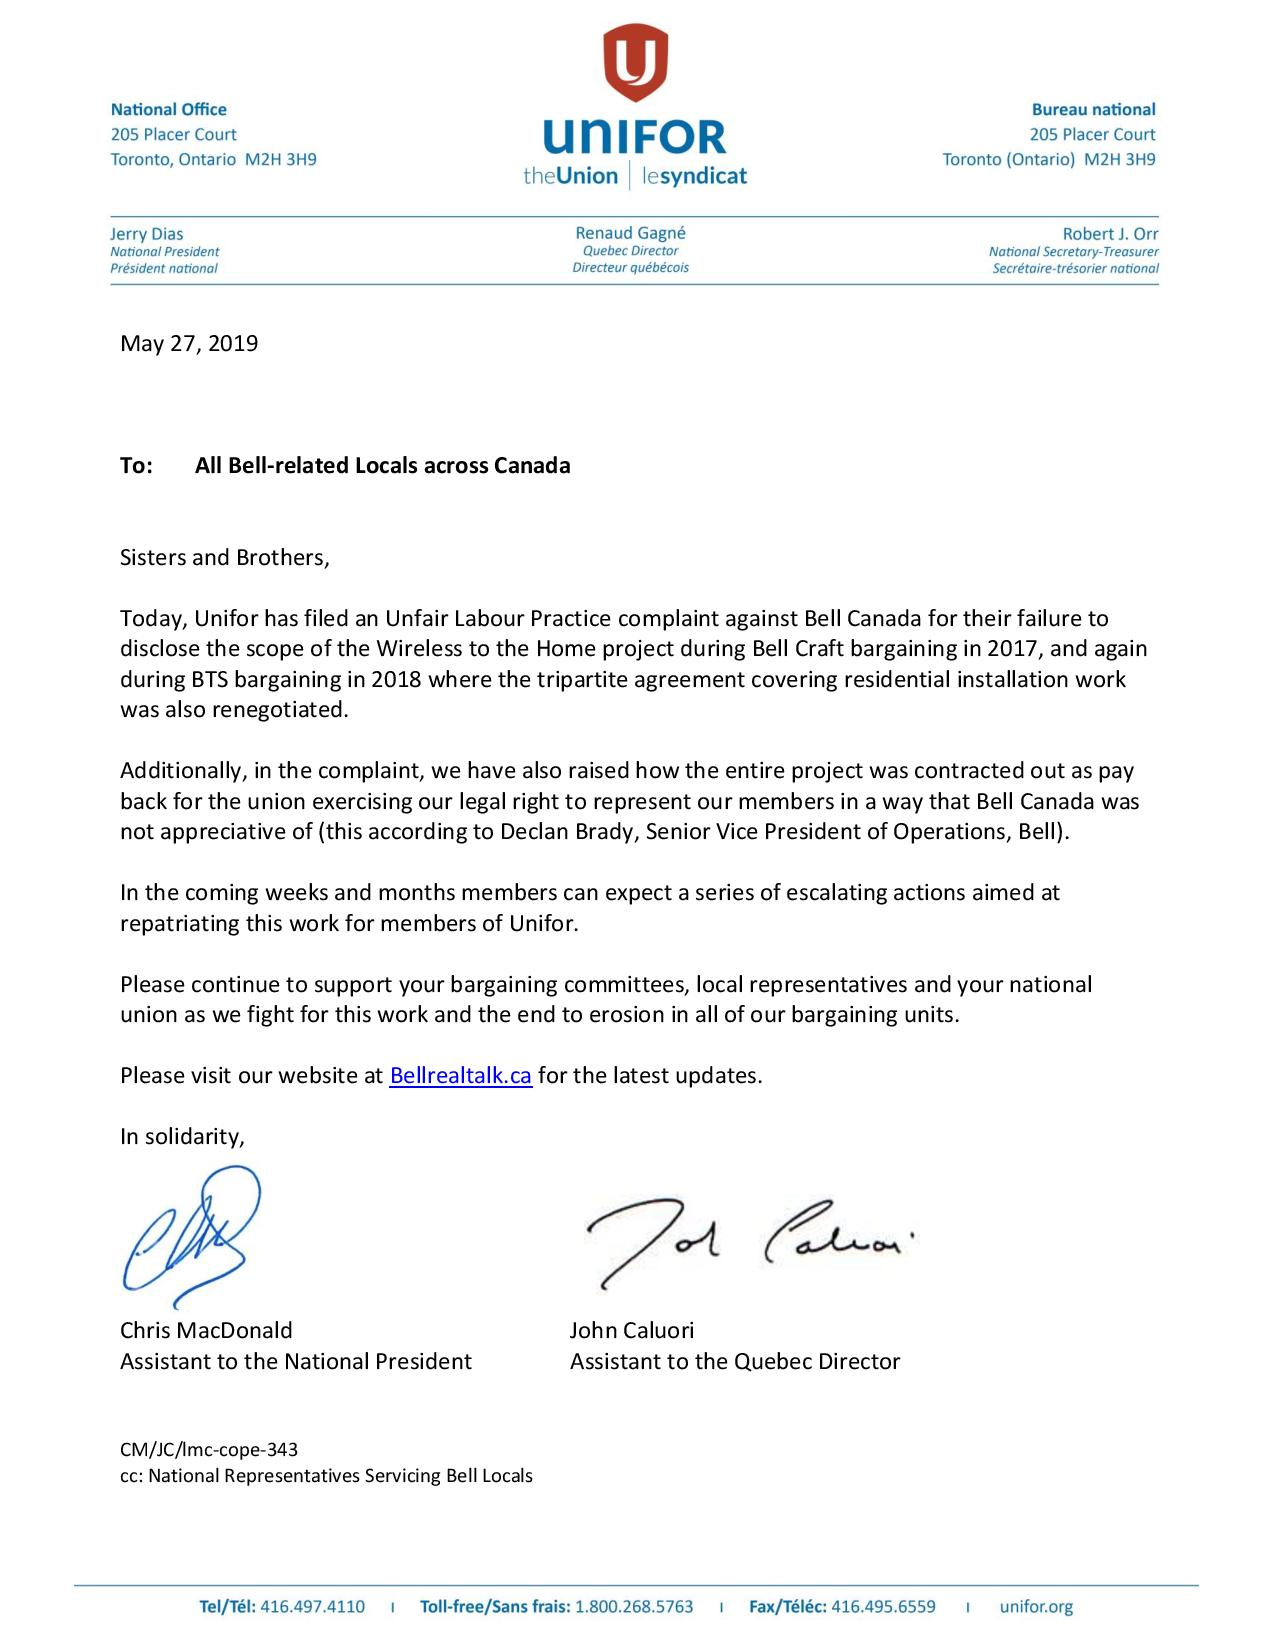 Letter to Bell locals re ULP May 27.2019-page-001.jpg